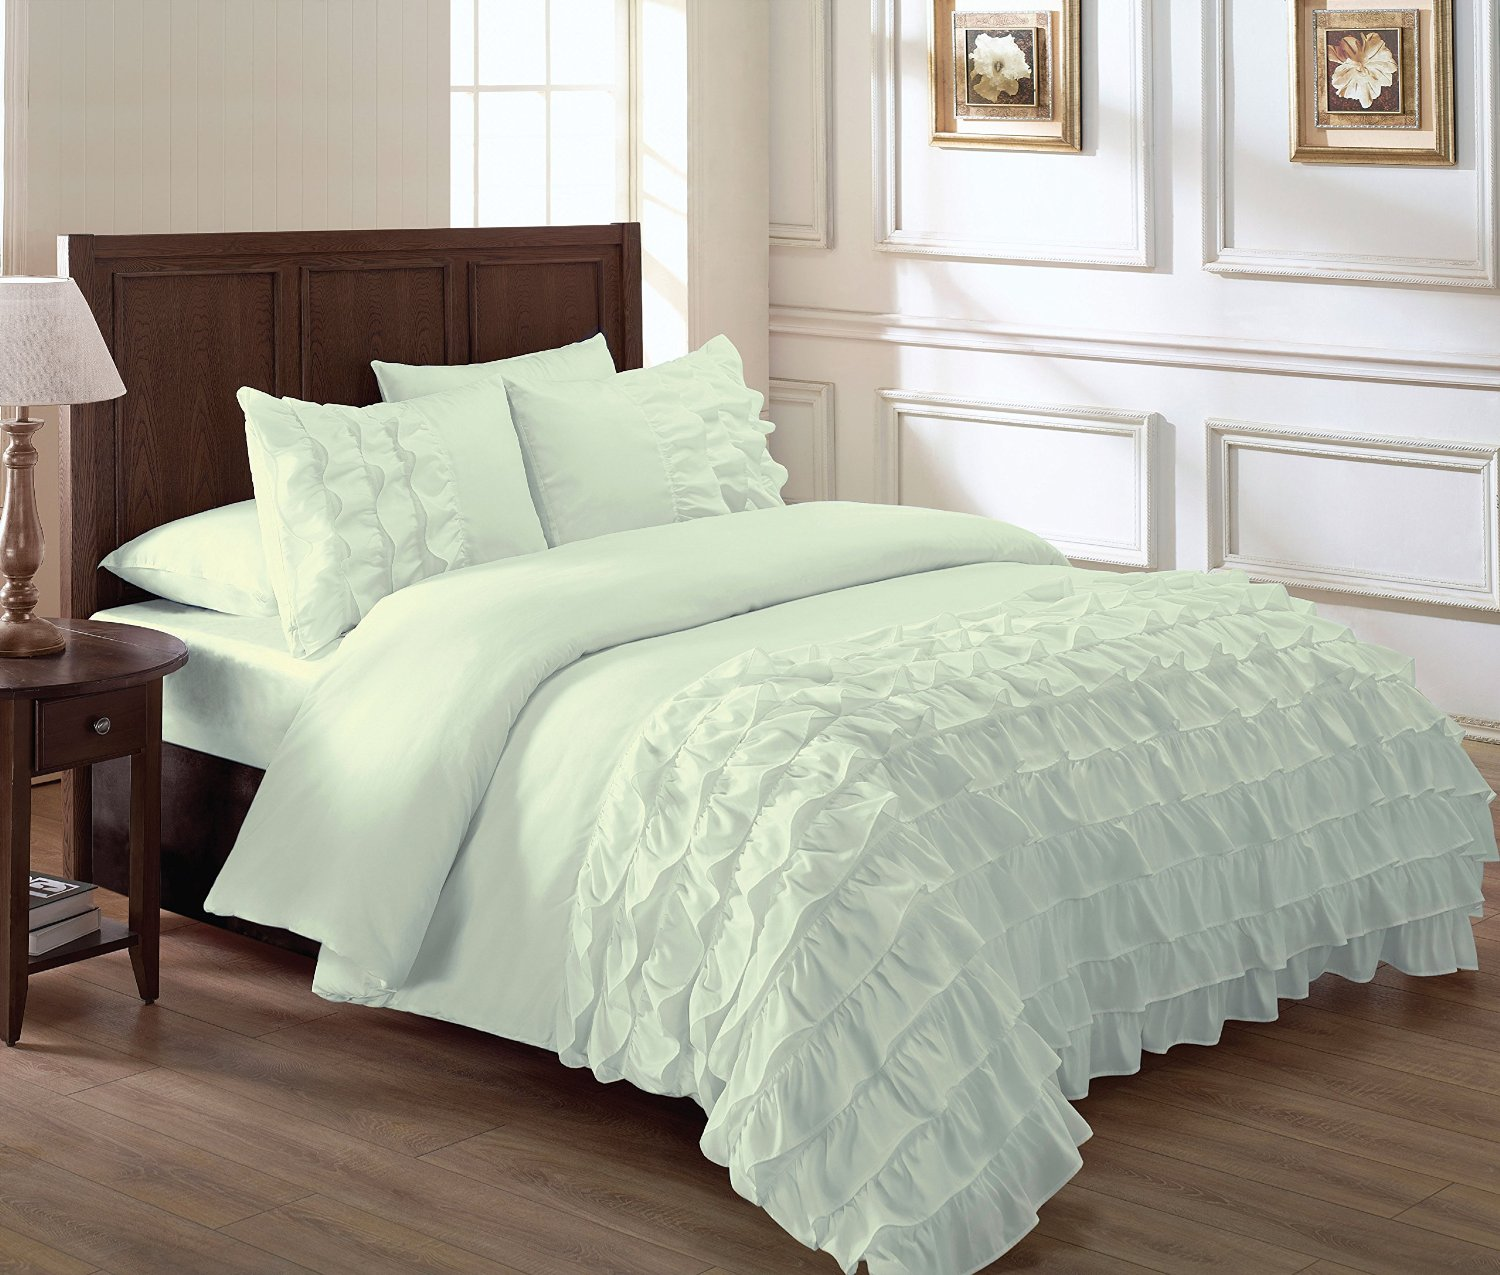 total fab alive breezy cool mint colored bedding and. Black Bedroom Furniture Sets. Home Design Ideas